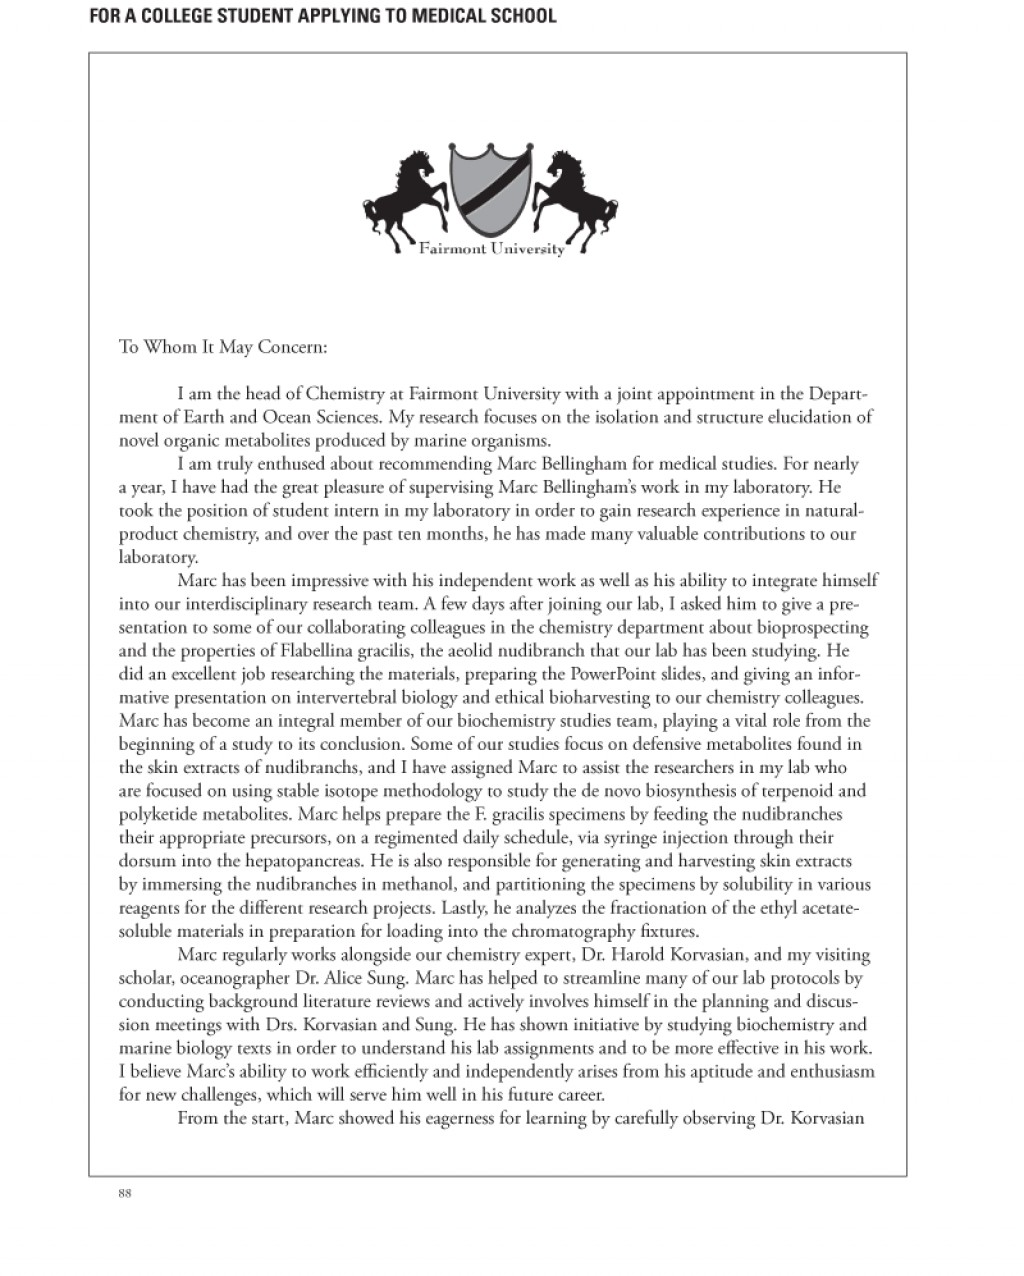 017 Satire Essays Letter Of Recommendation Sample 1resize8002c997 Essay Fearsome About High School Examples On Gun Control Large